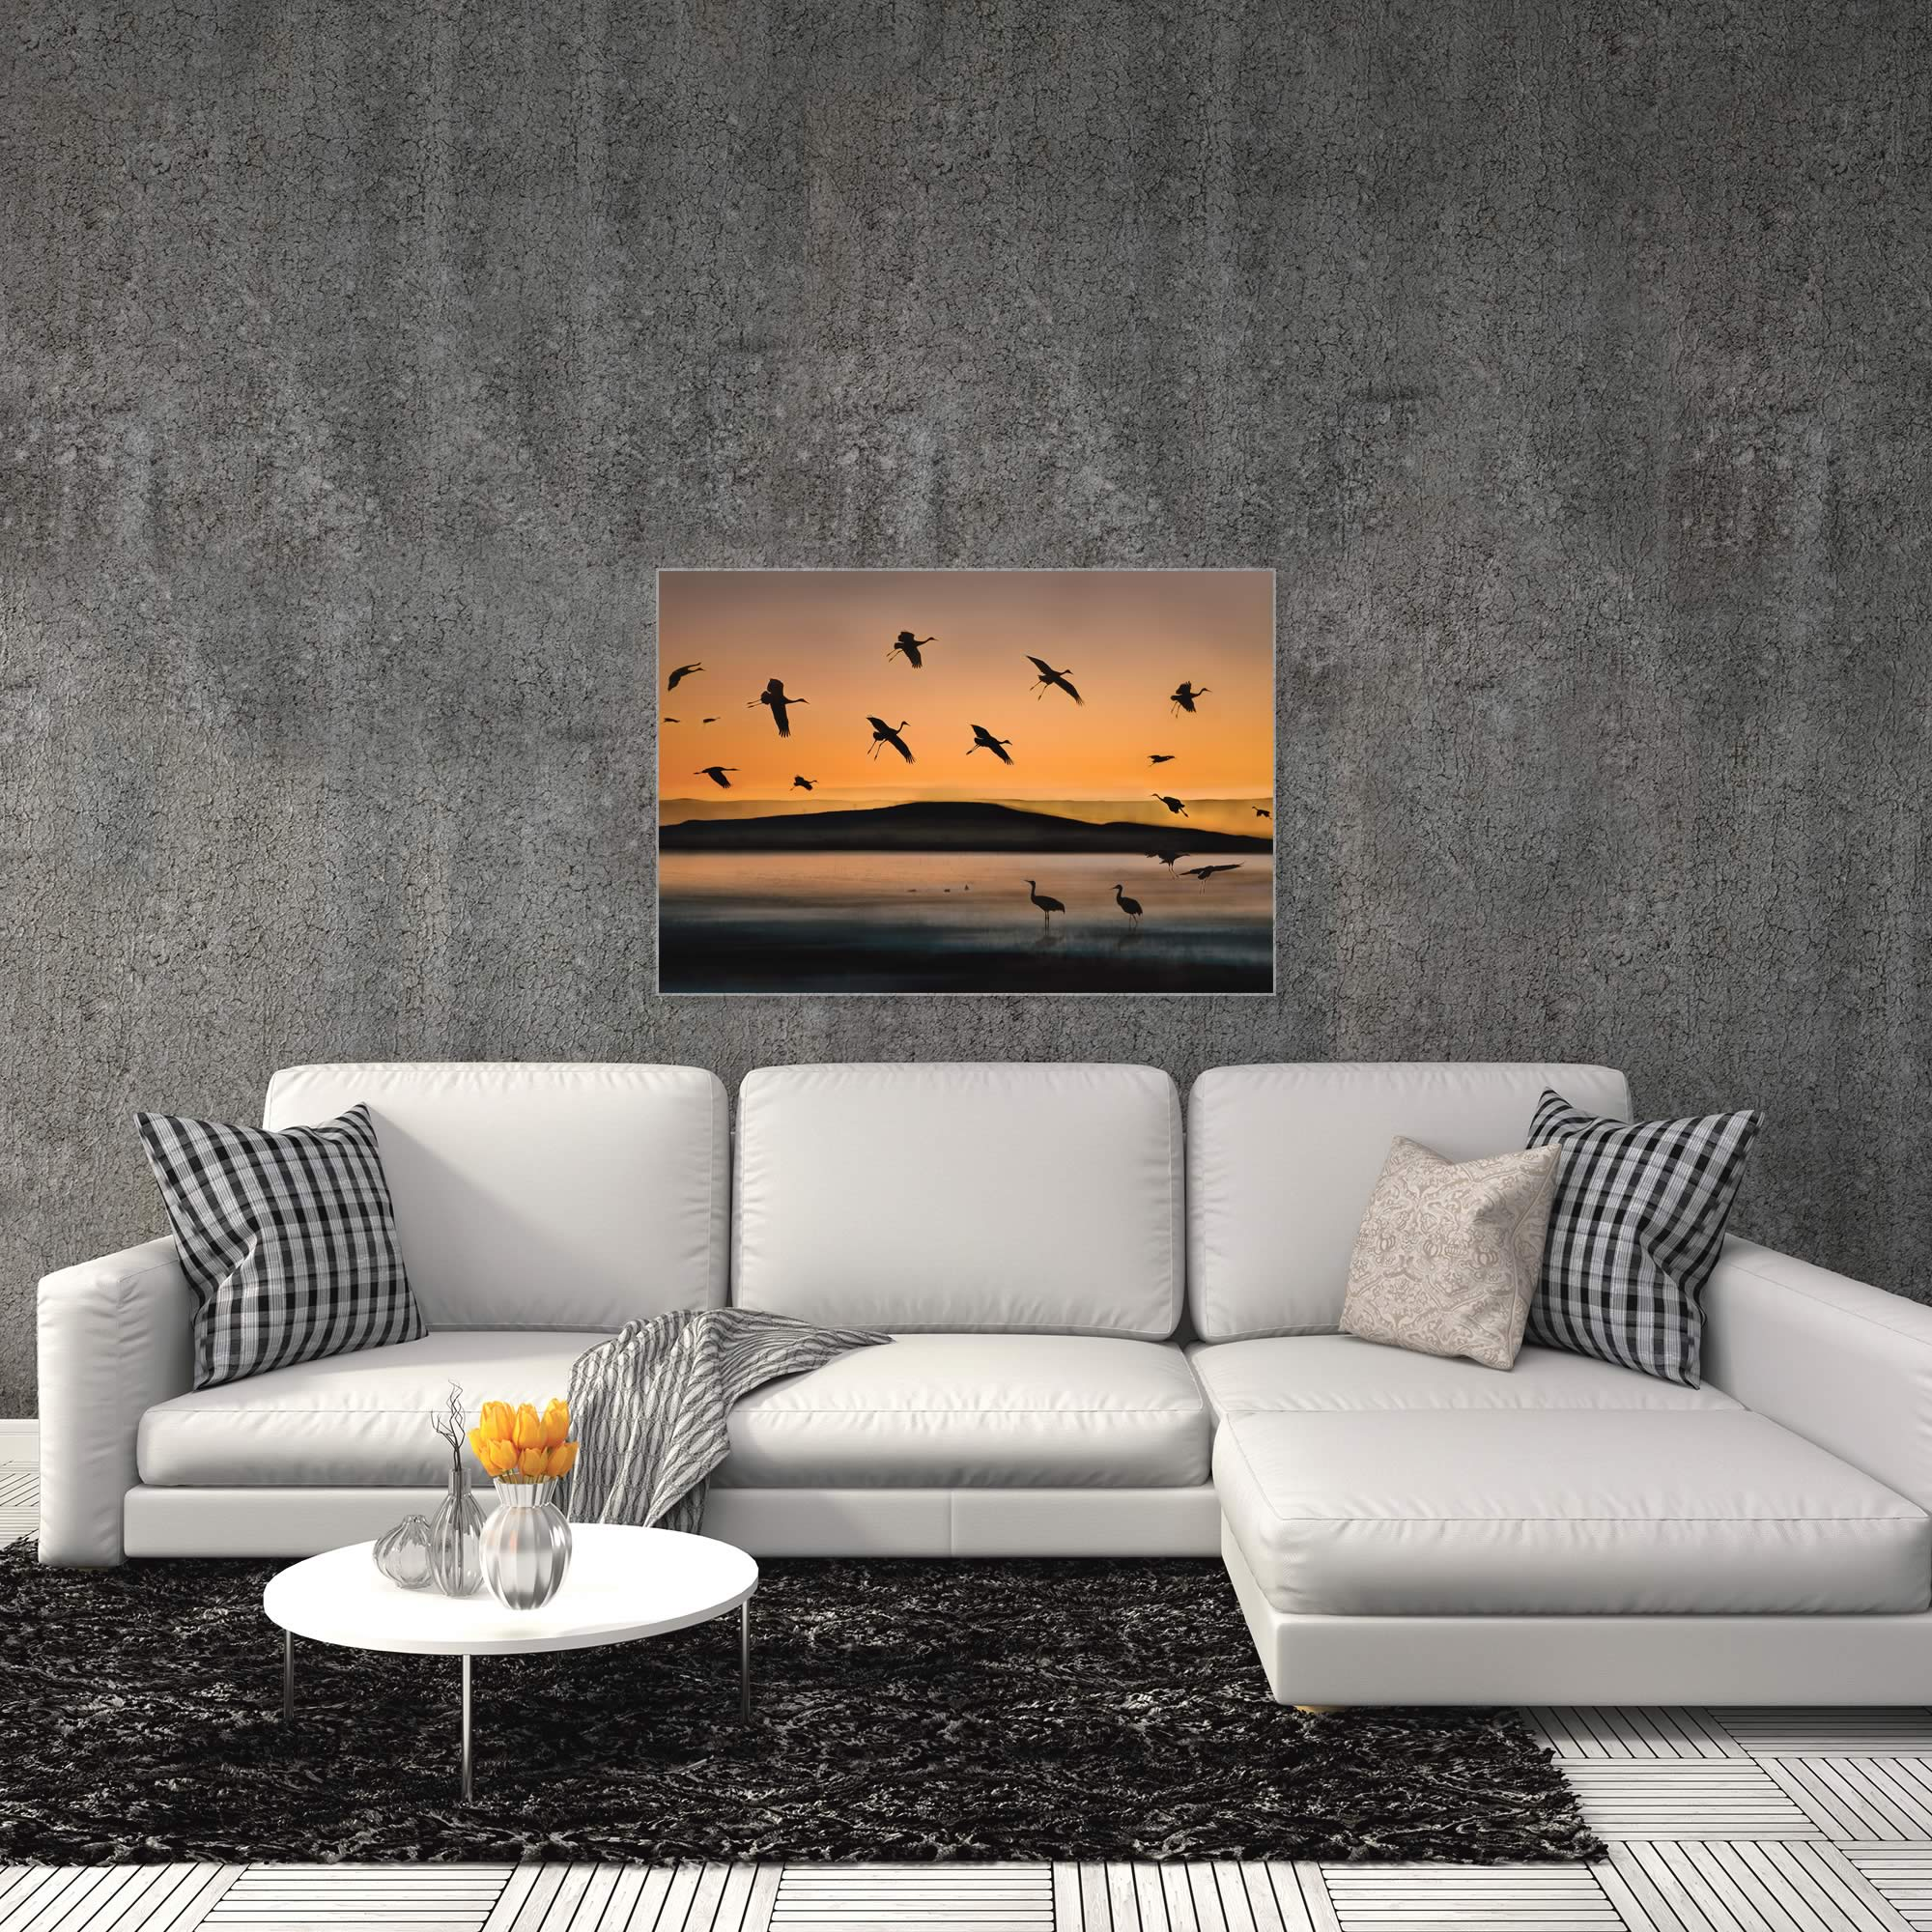 Cranes at Sunset by Shenshen Dou - Bird Silhouette Art on Metal or Acrylic - Alternate View 3